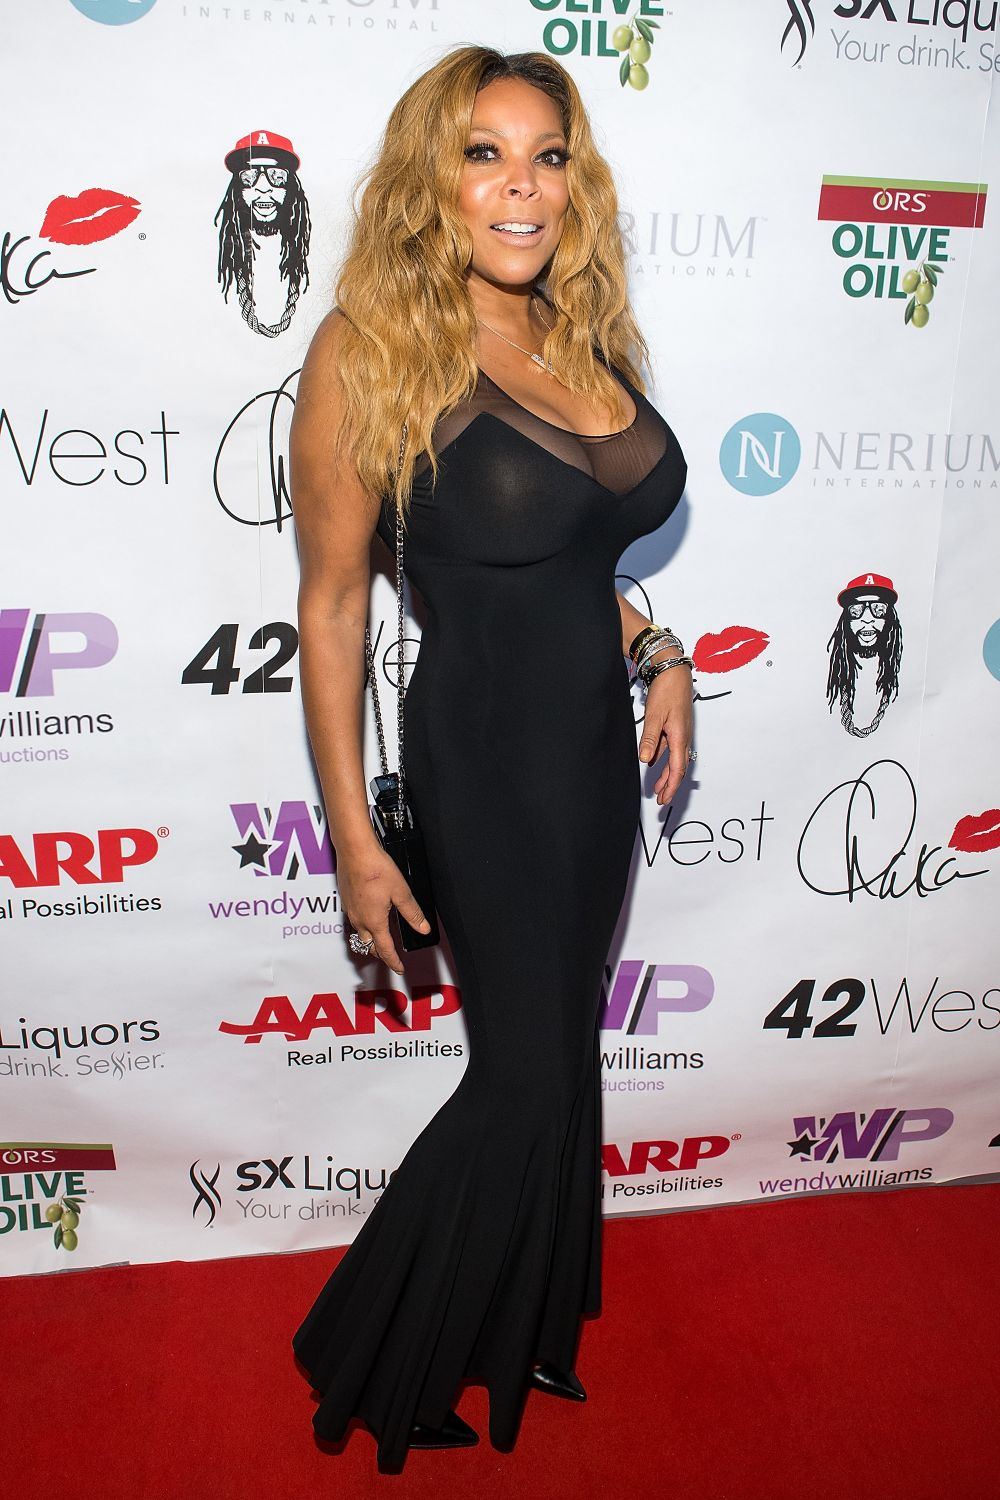 wendy williams wikipedia 1